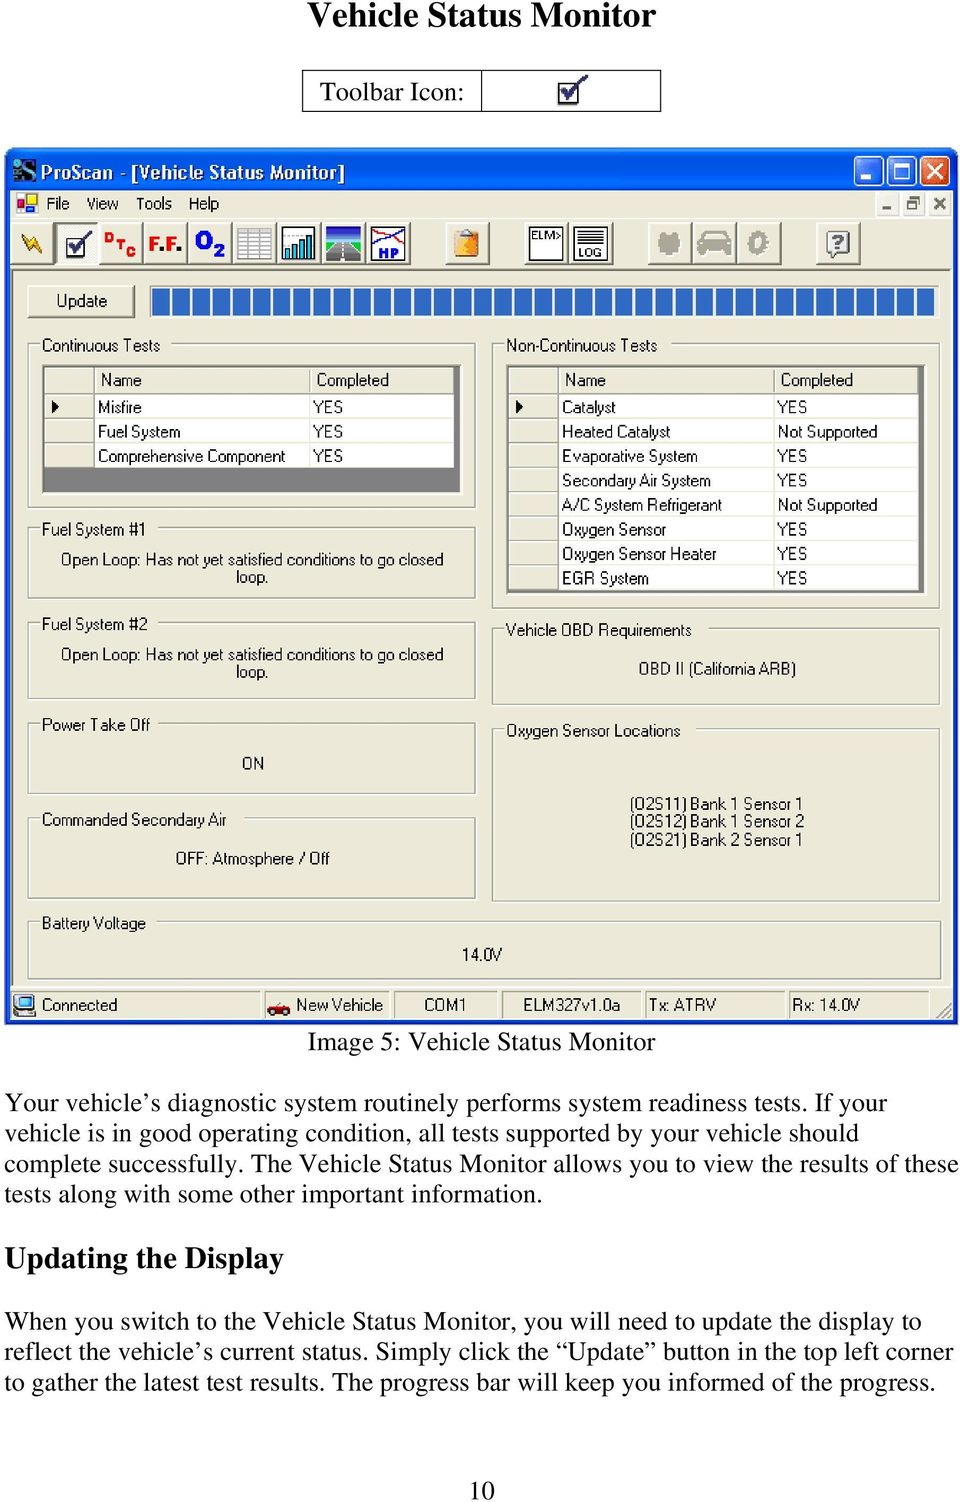 The Vehicle Status Monitor allows you to view the results of these tests along with some other important information.